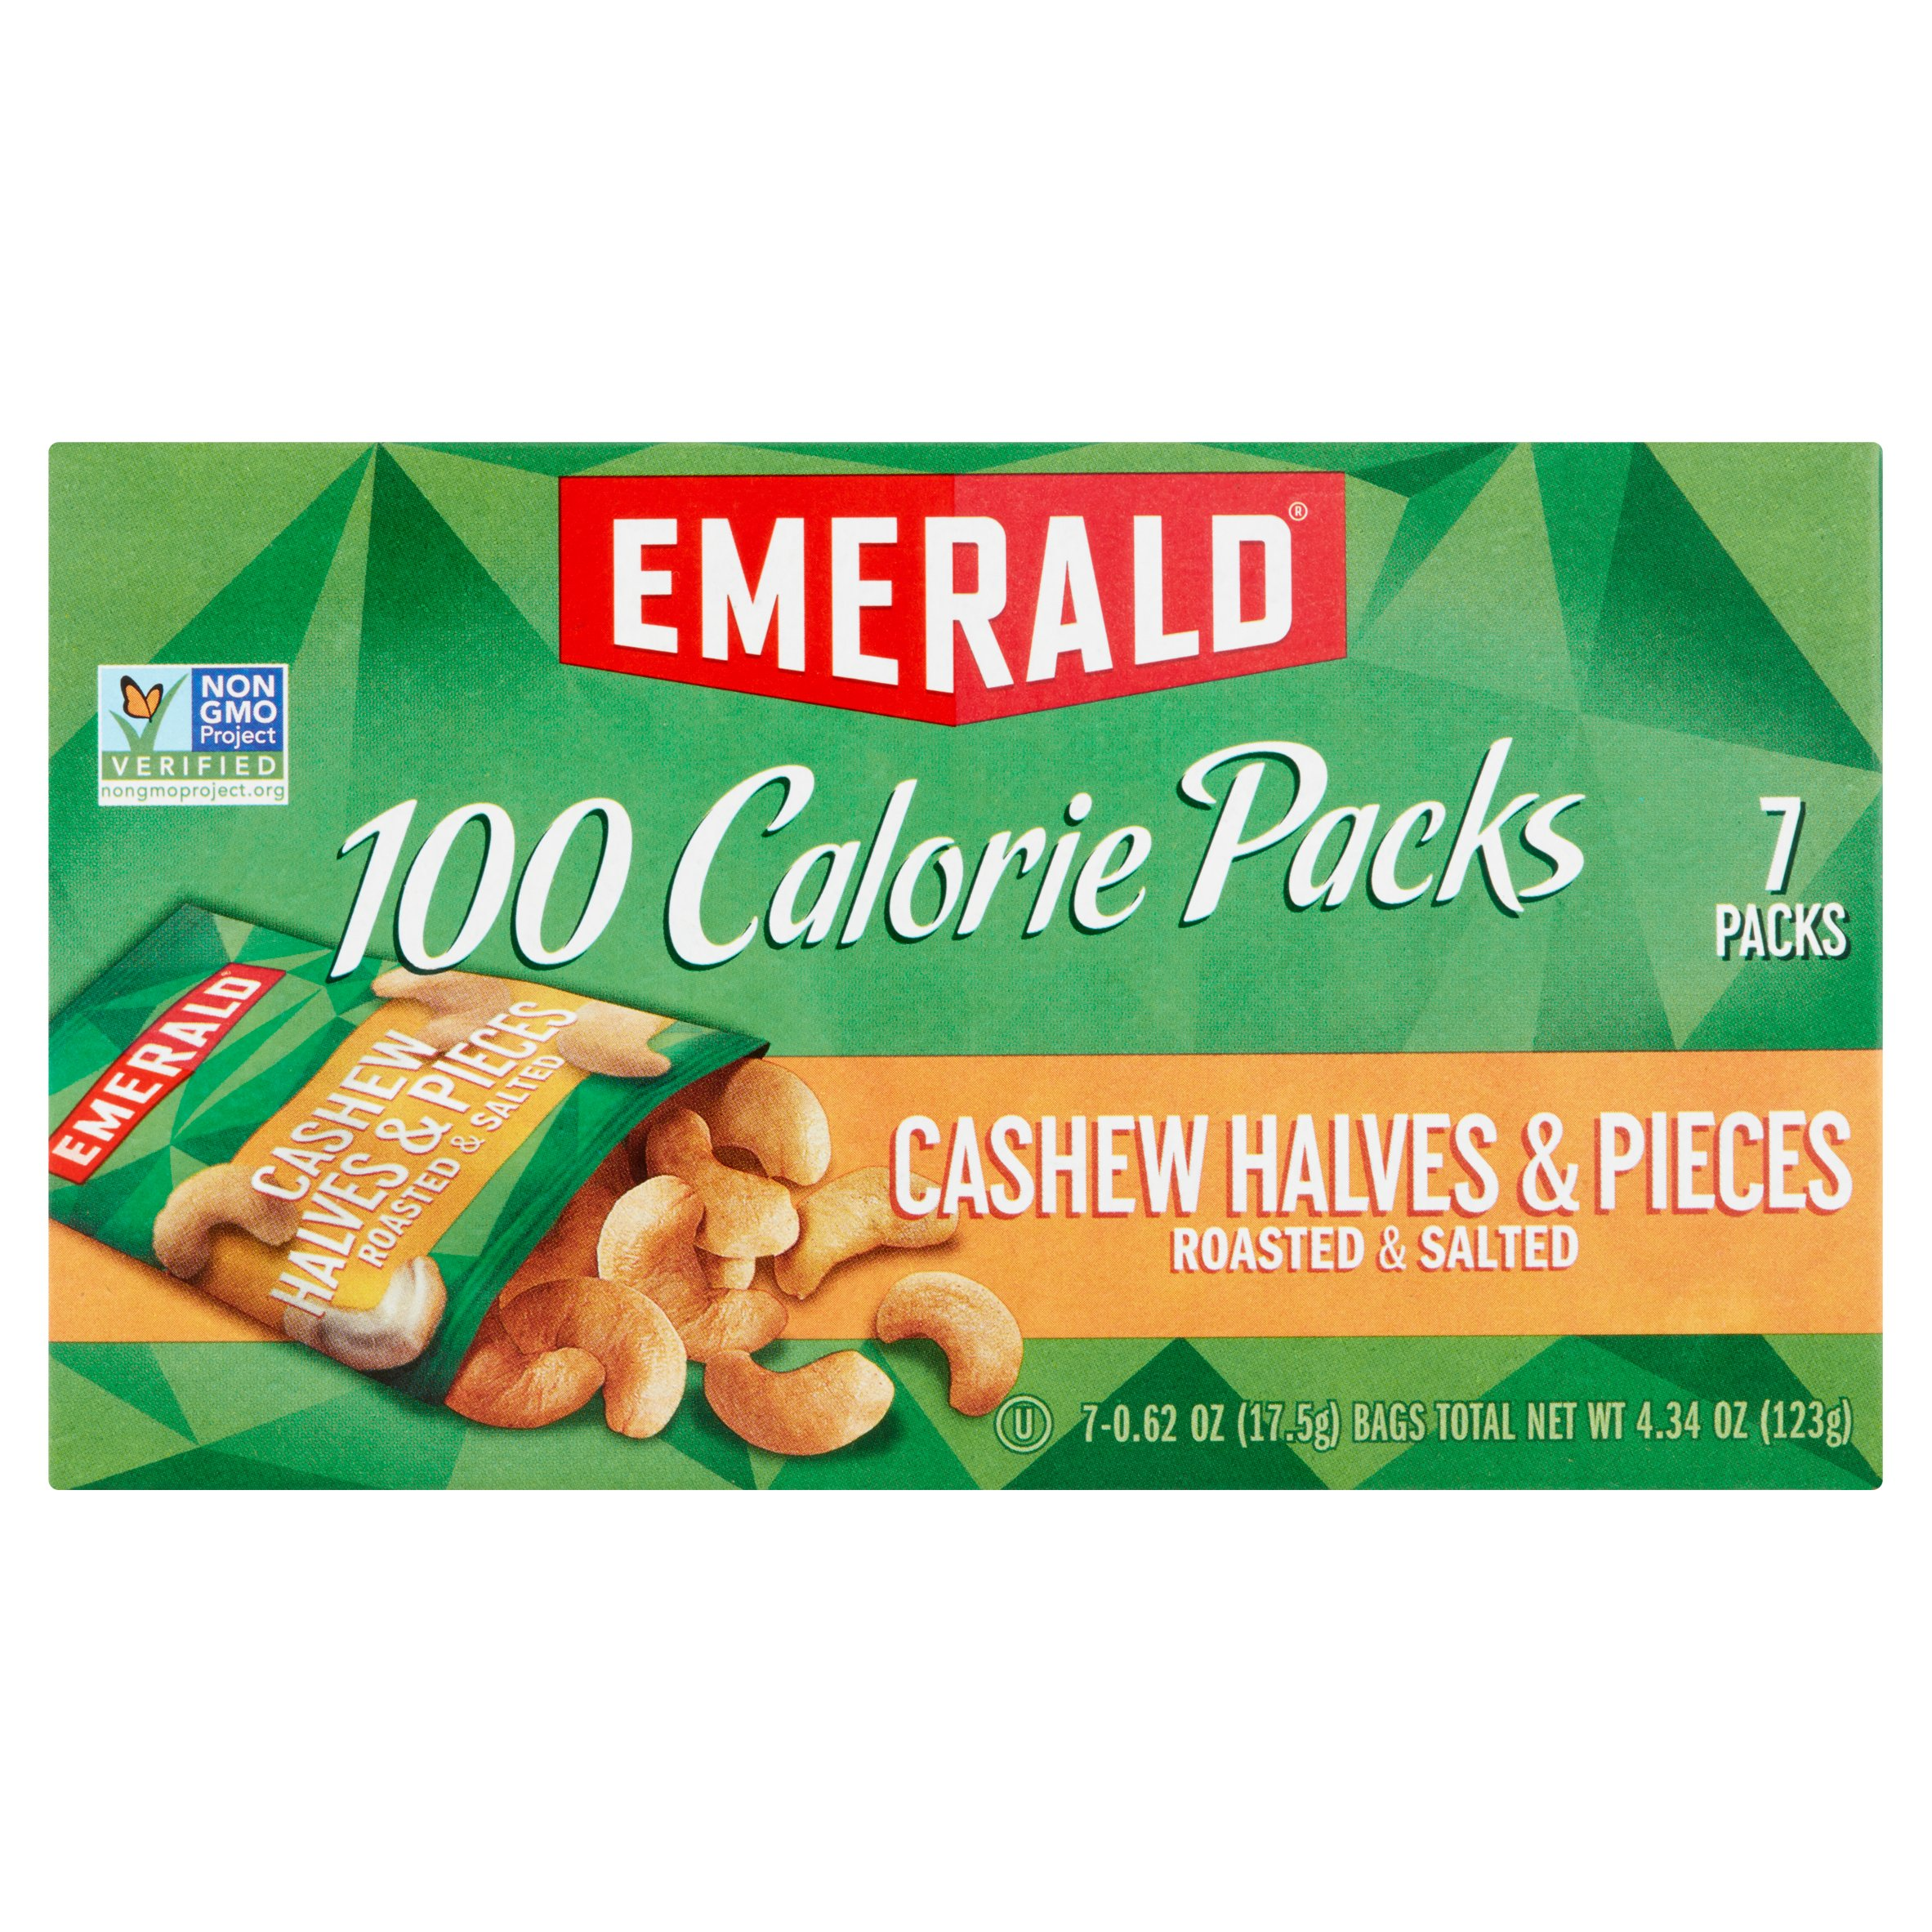 Emerald 100 Calorie Packs Cashew Halves & Pieces, 0.62 oz, 7 count